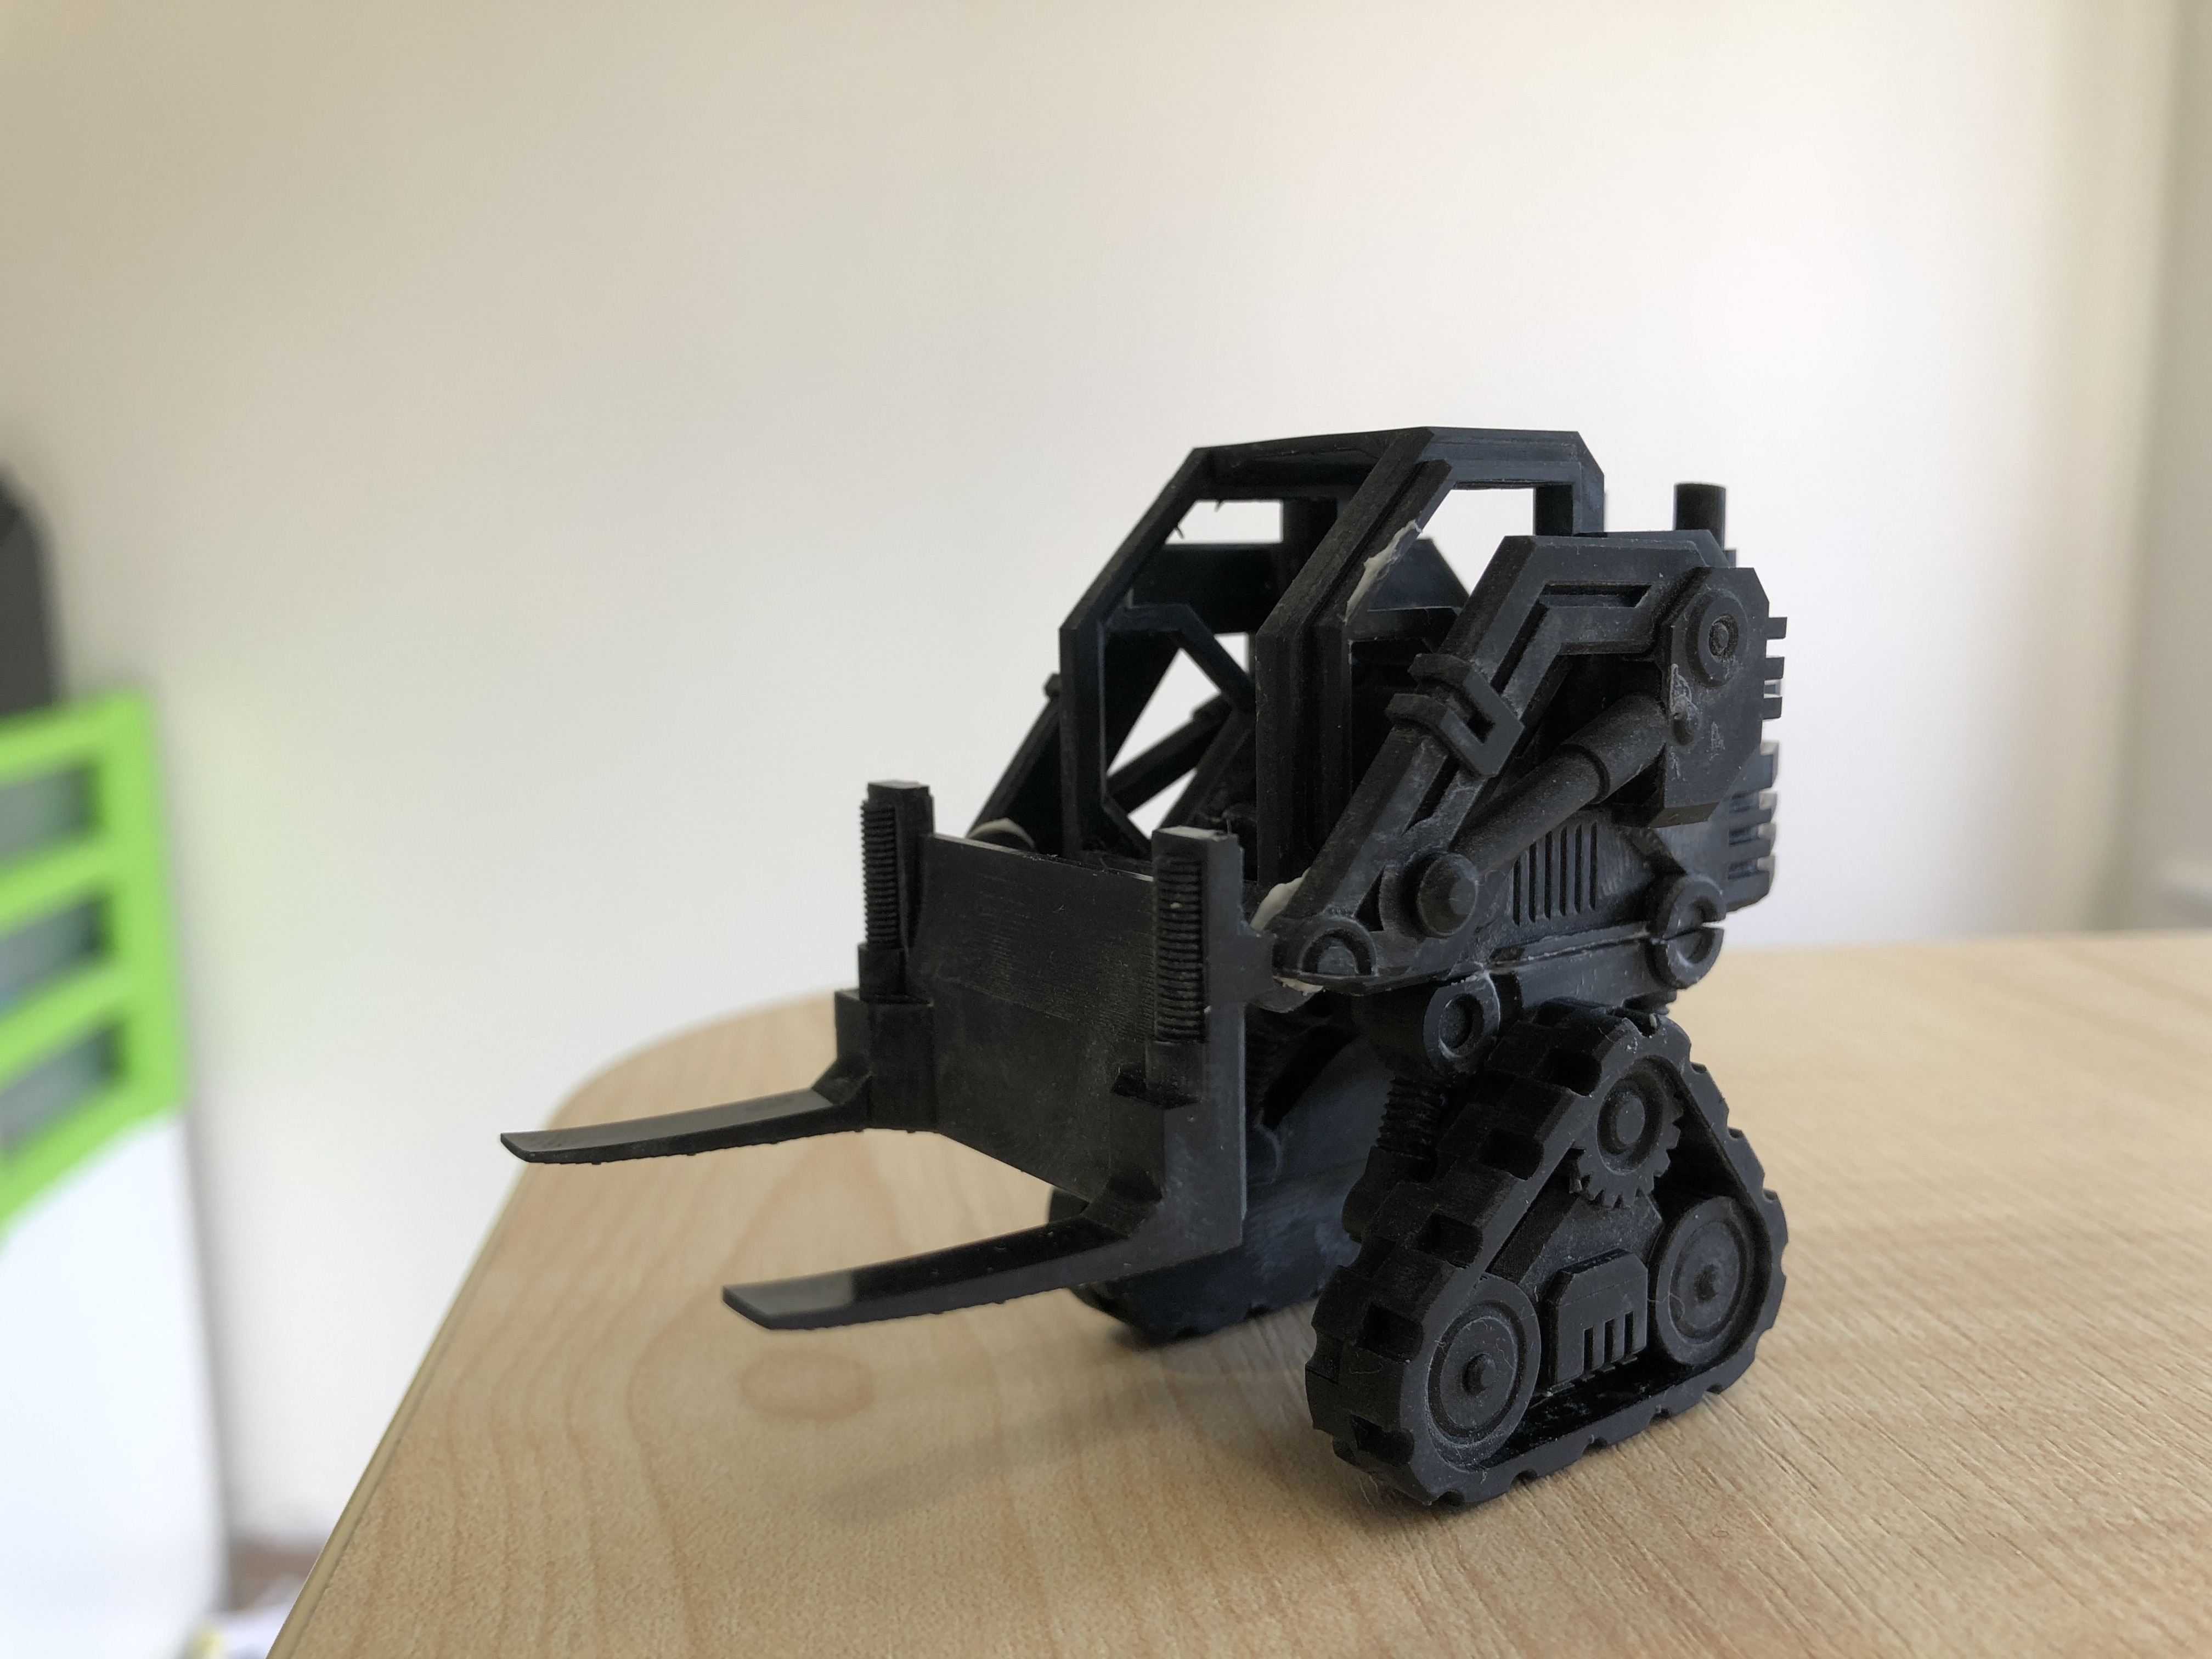 Necromunda loader from Thingiverse